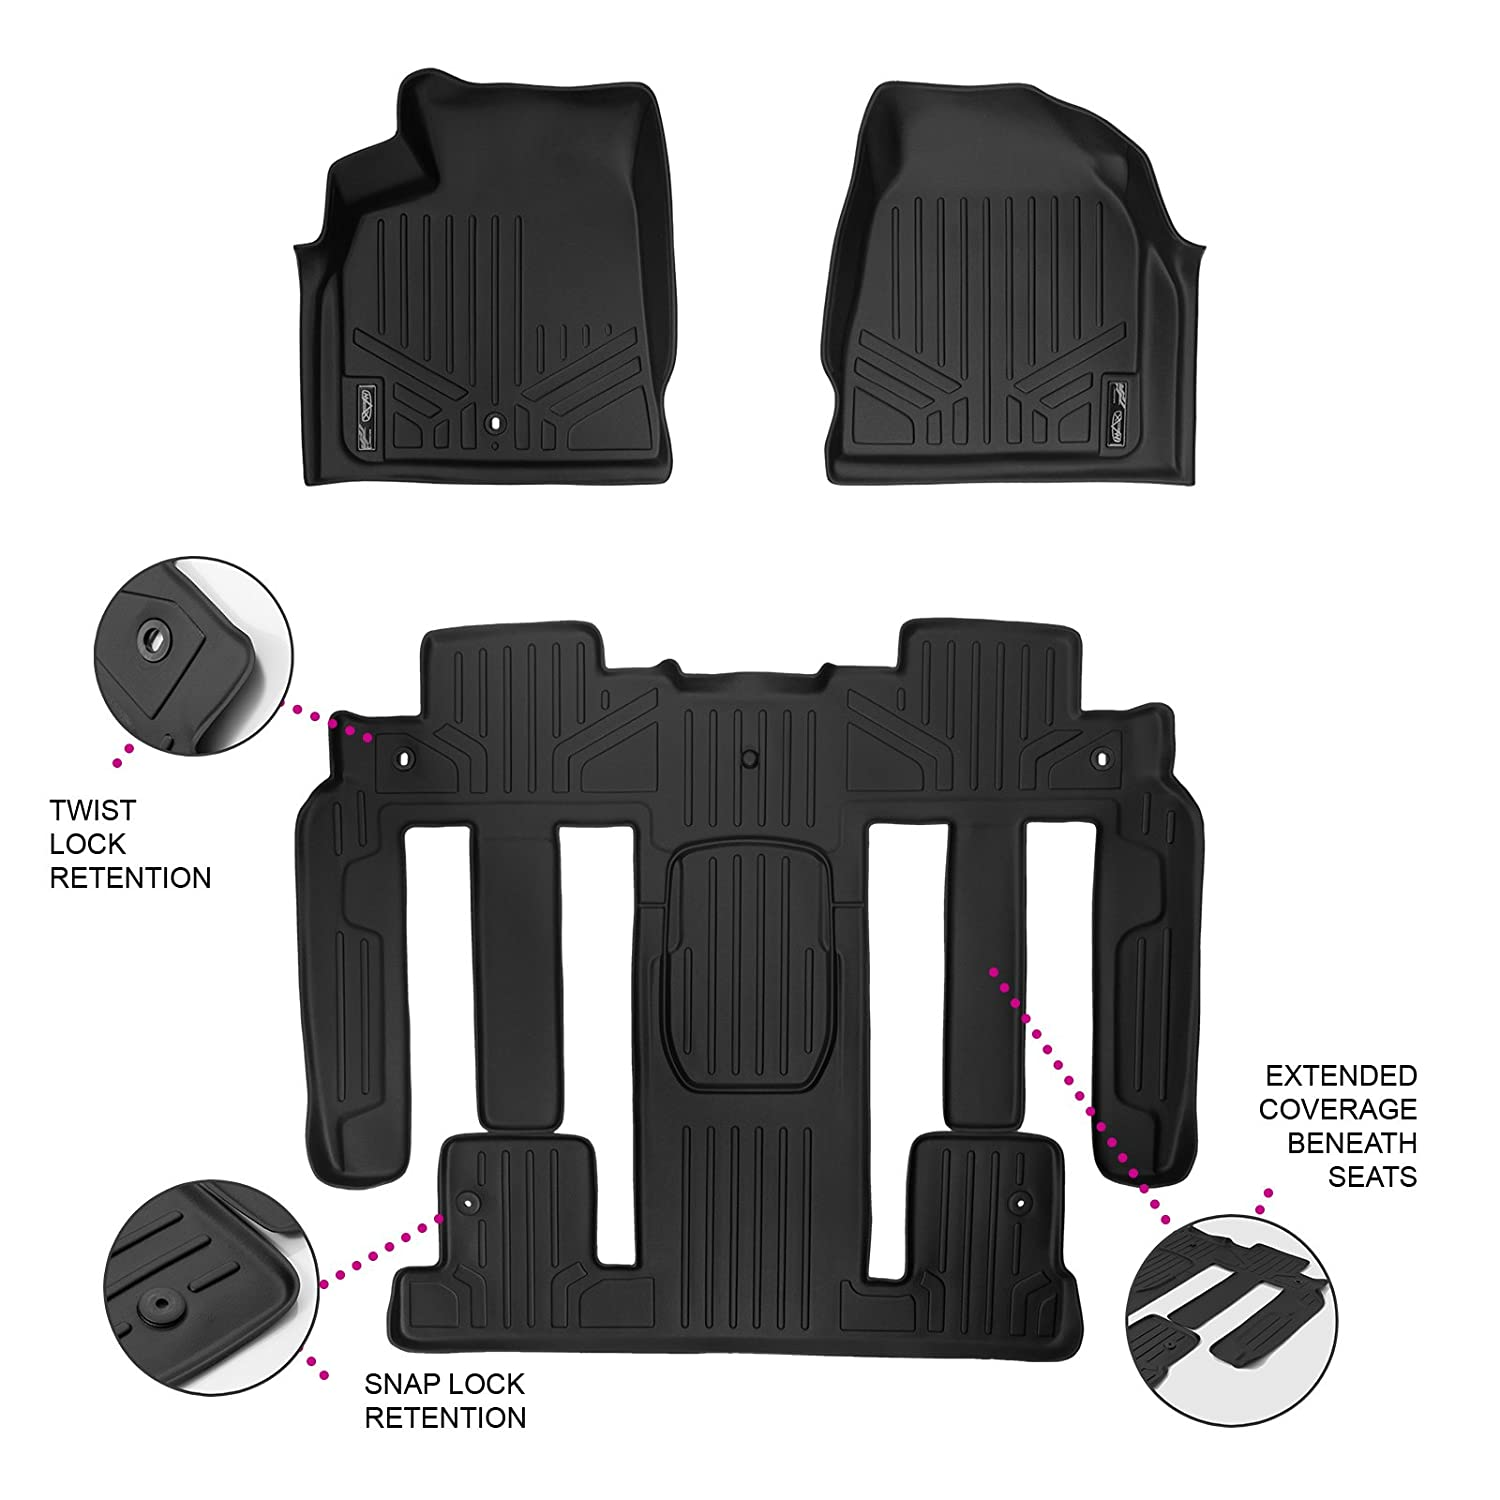 MAXLINER Floor Mats 2 Row Liner Set Black for Traverse/Enclave/Acadia/Outlook (with 2nd Row Bucket Seats)